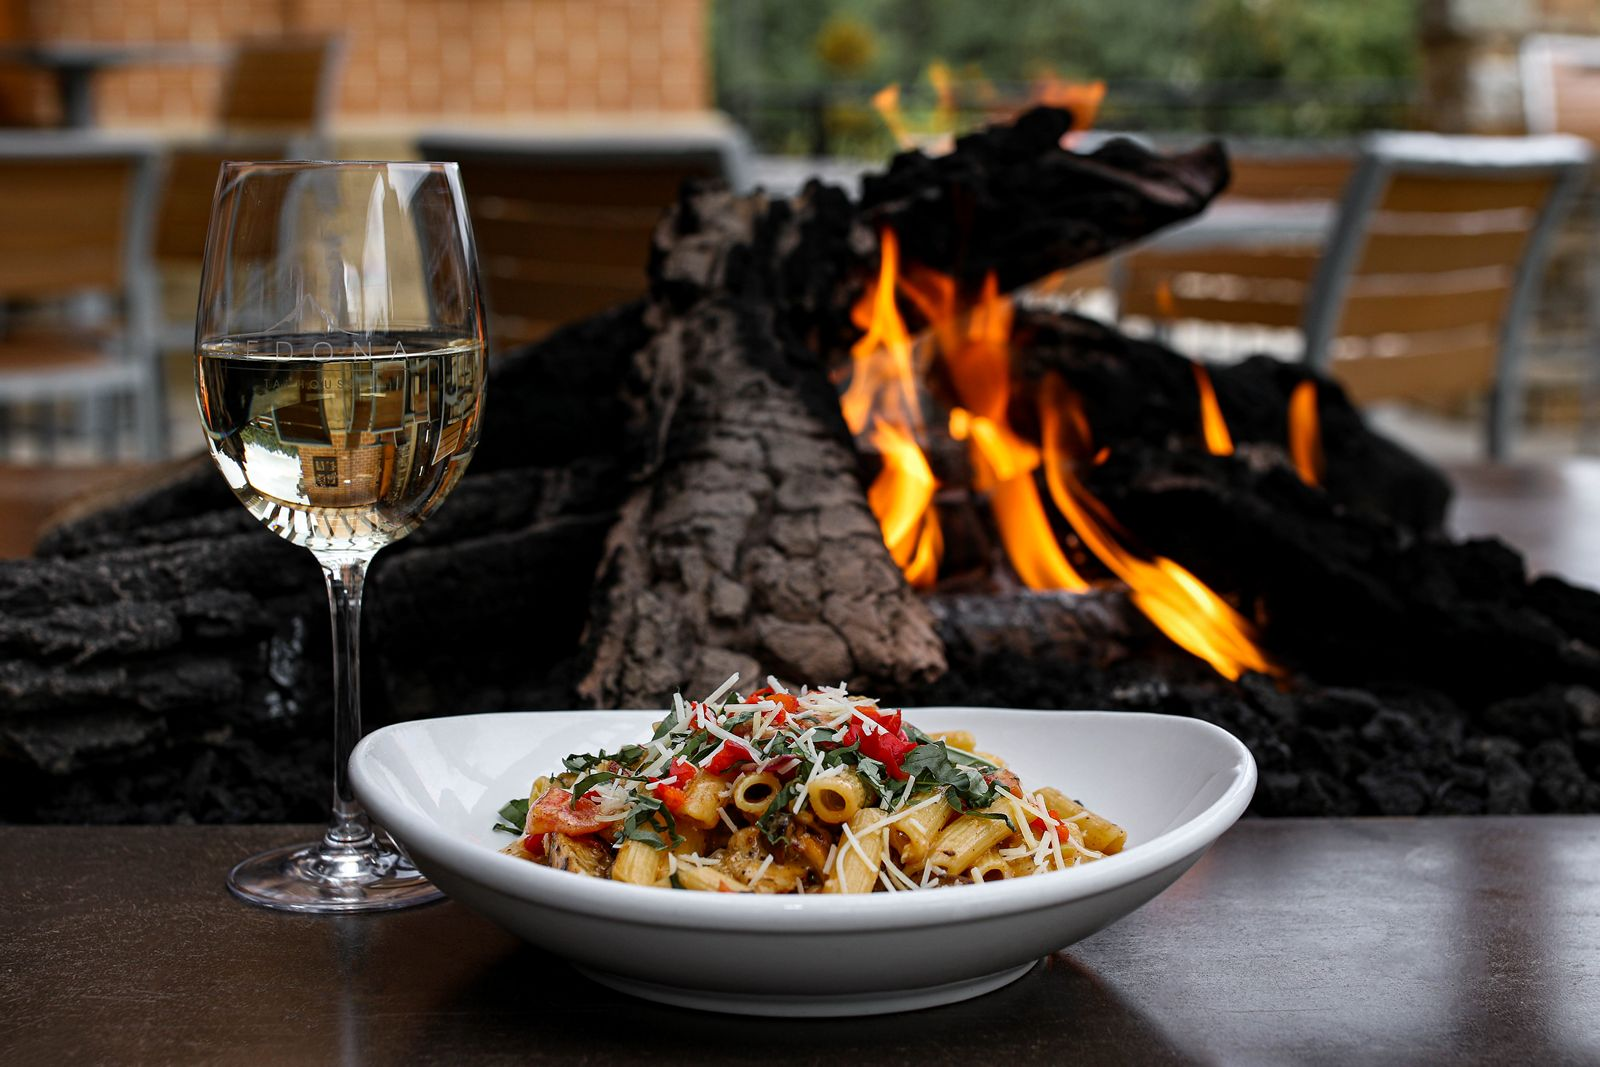 Sedona Taphouse to Open 15th Location in Chantilly, VA at Preserve at Westfields